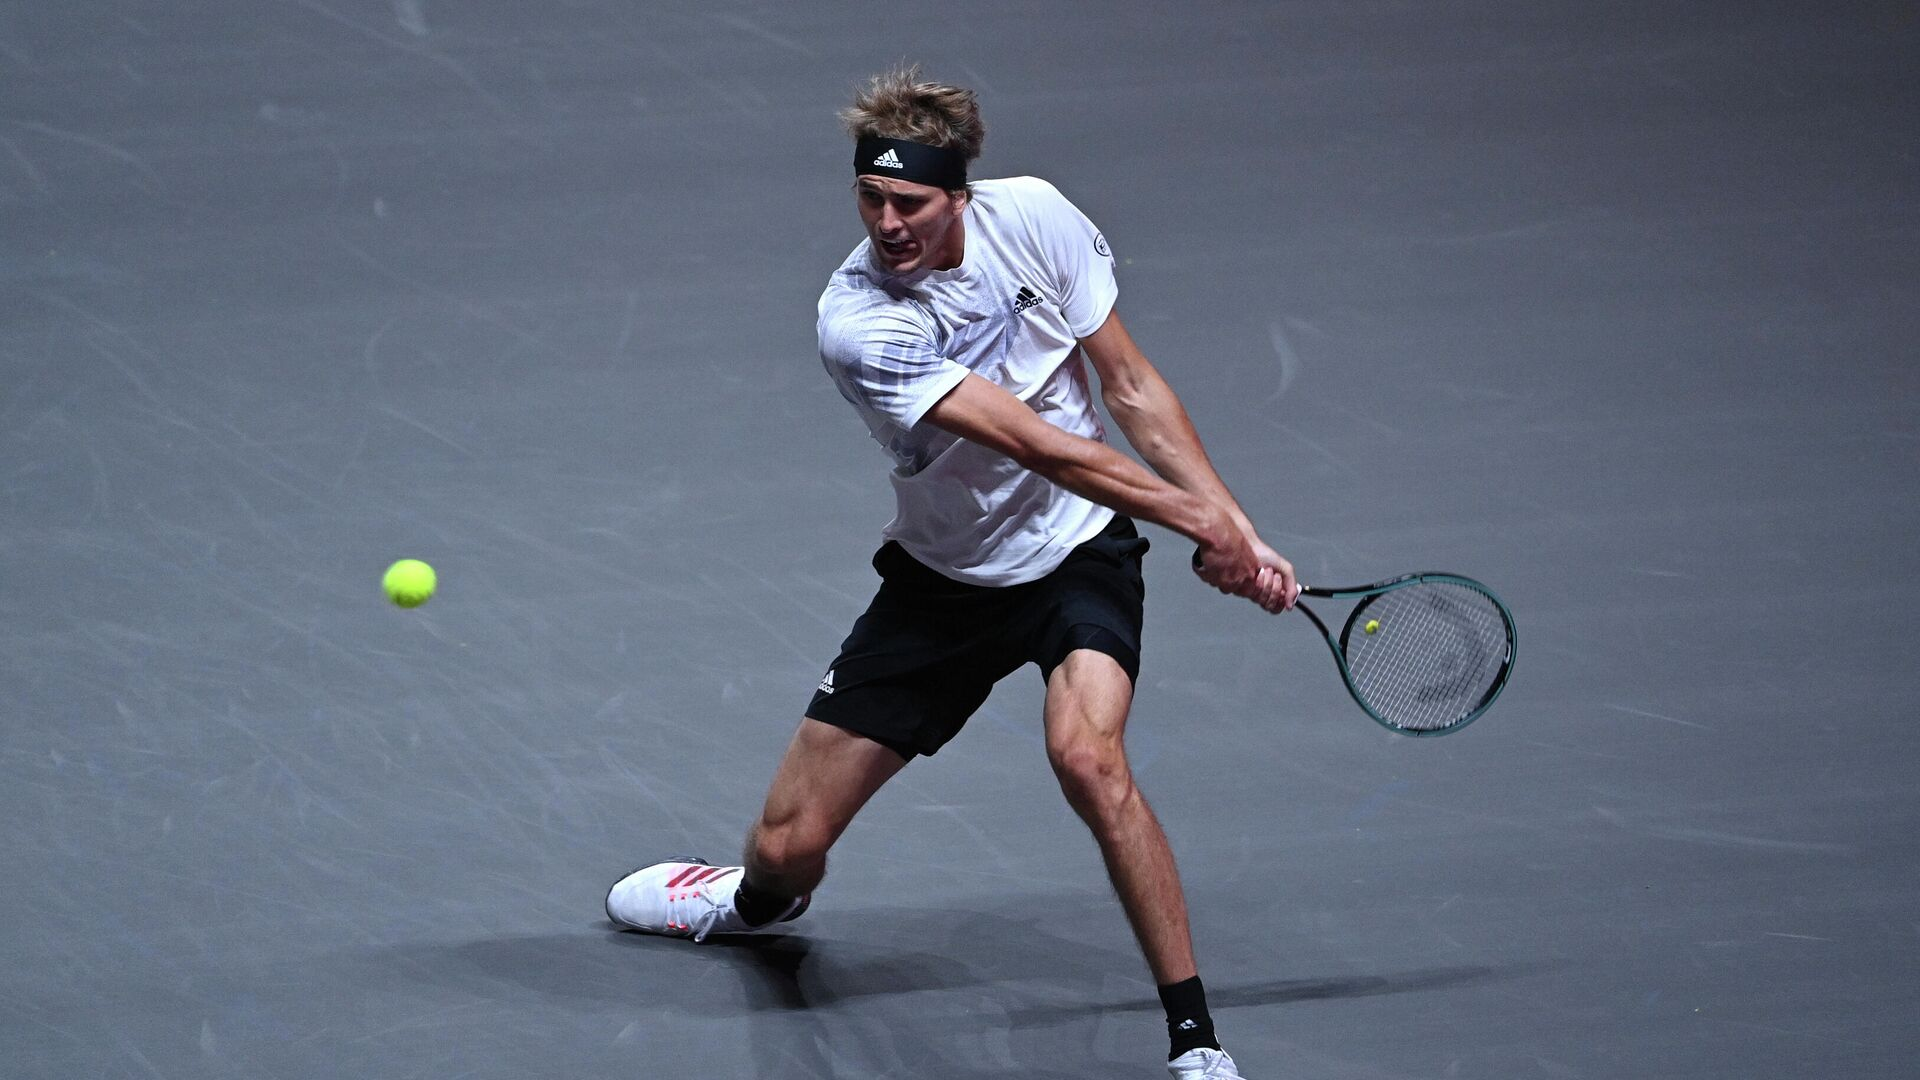 Germany's Alexander Zverev returns a ball to Spain's Fernando Verdasco during the men's tennis tournament of the 'Bett1Hulks Indoors' at the Lanxess Arena in Cologne, western Germany, on October 15, 2020. (Photo by Ina FASSBENDER / AFP) - РИА Новости, 1920, 16.10.2020